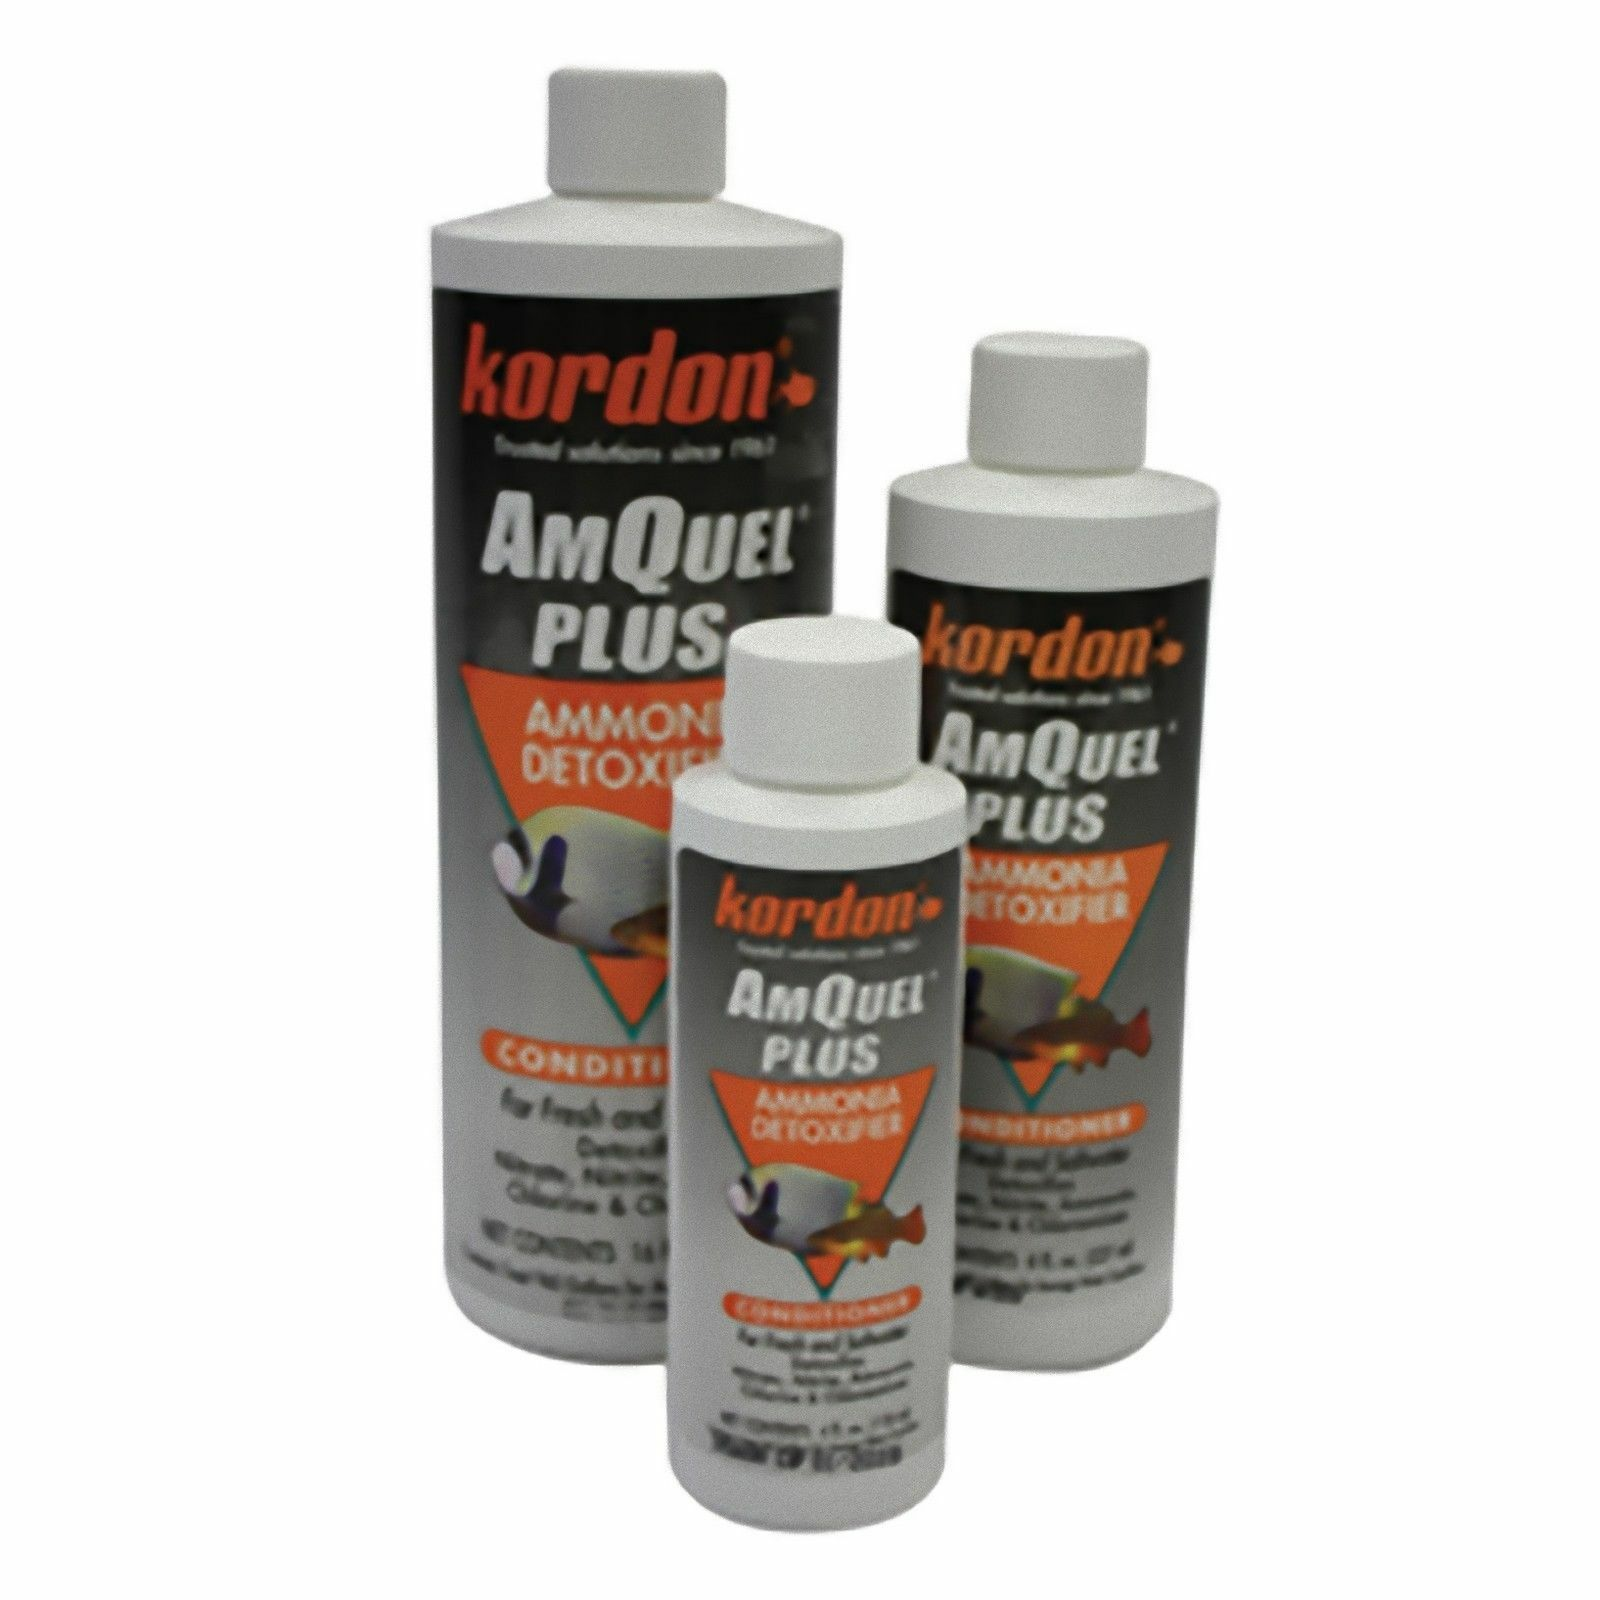 Kordon Amquel Plus 118ml 237ml 473ml Aquarium Fish Tank Nitrate Nitrite Ammonia